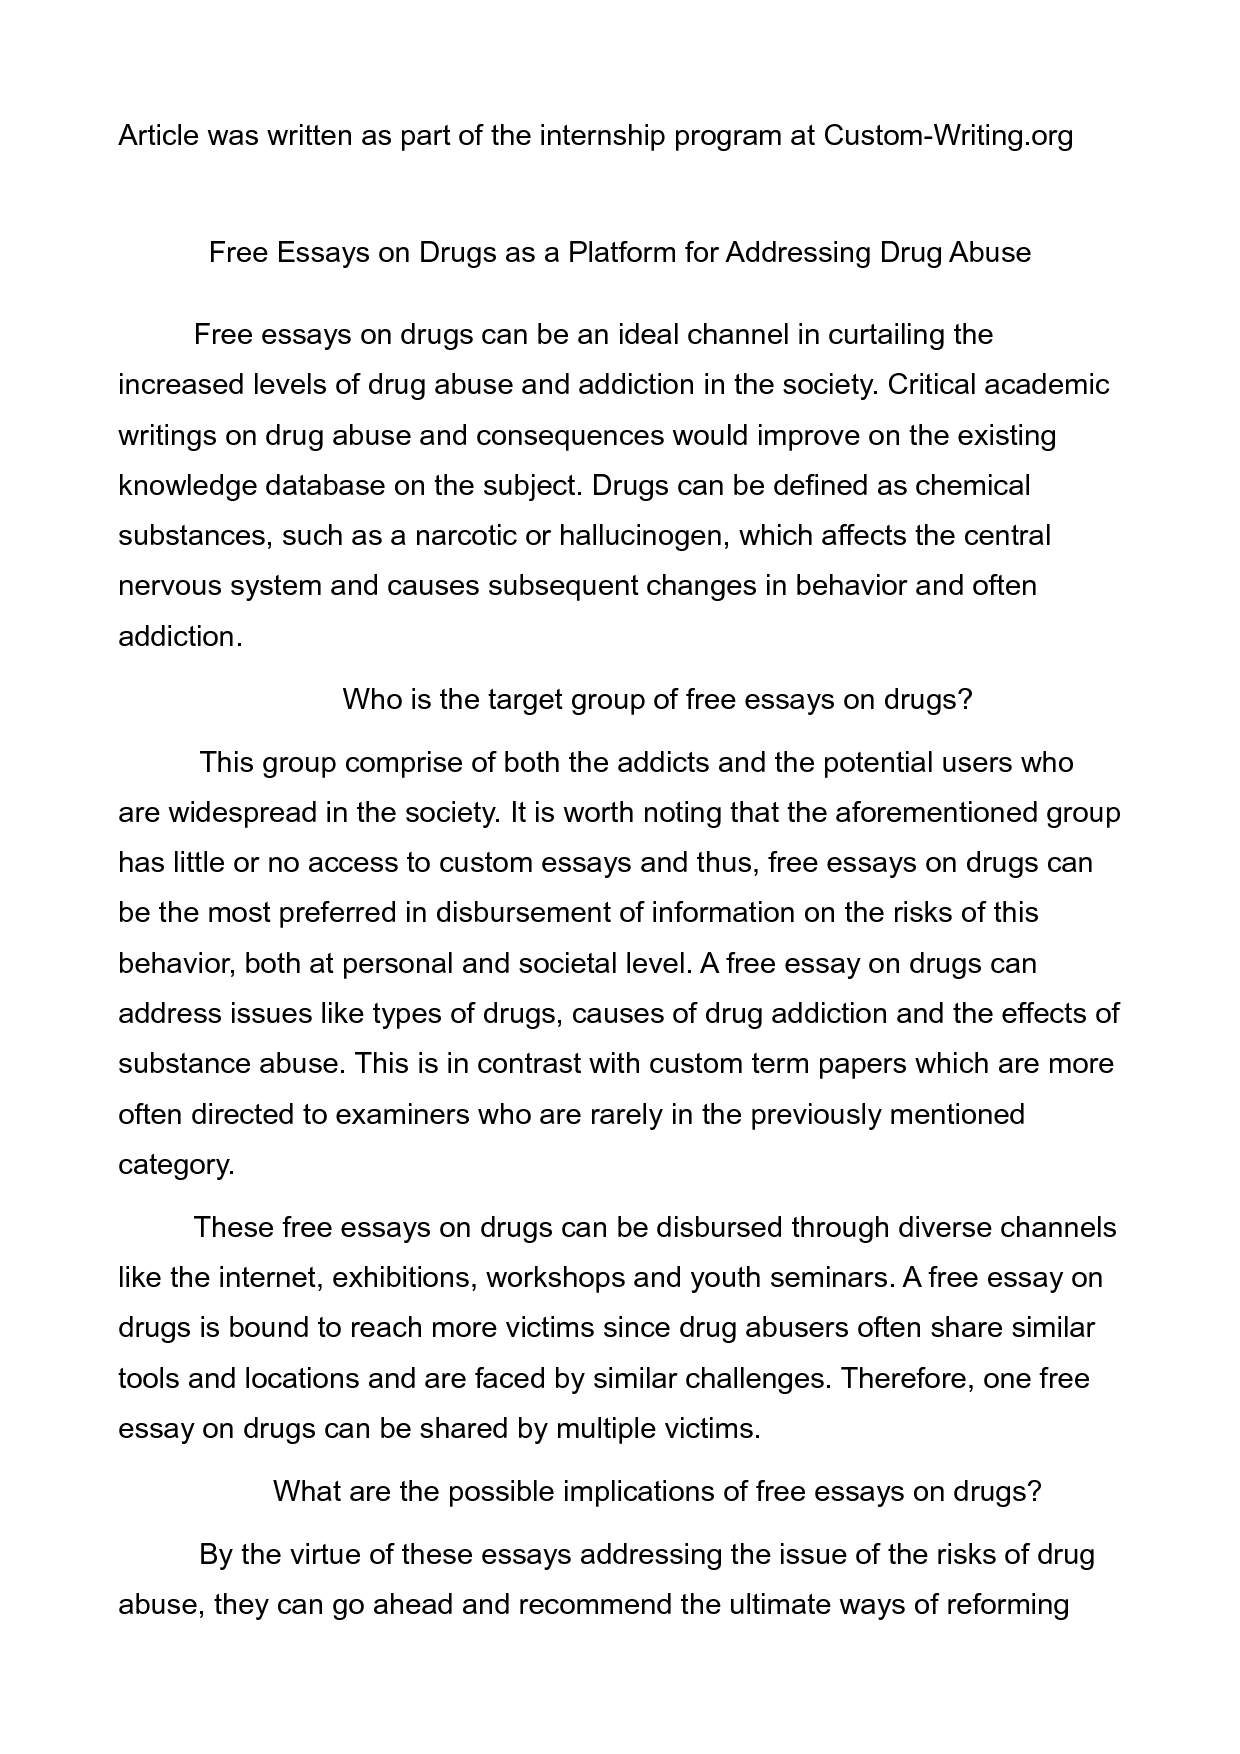 009 Argumentative Essay About Drugs Amazing Outline 6th Grade Persuasive/argumentative Definition Topics Sports Full